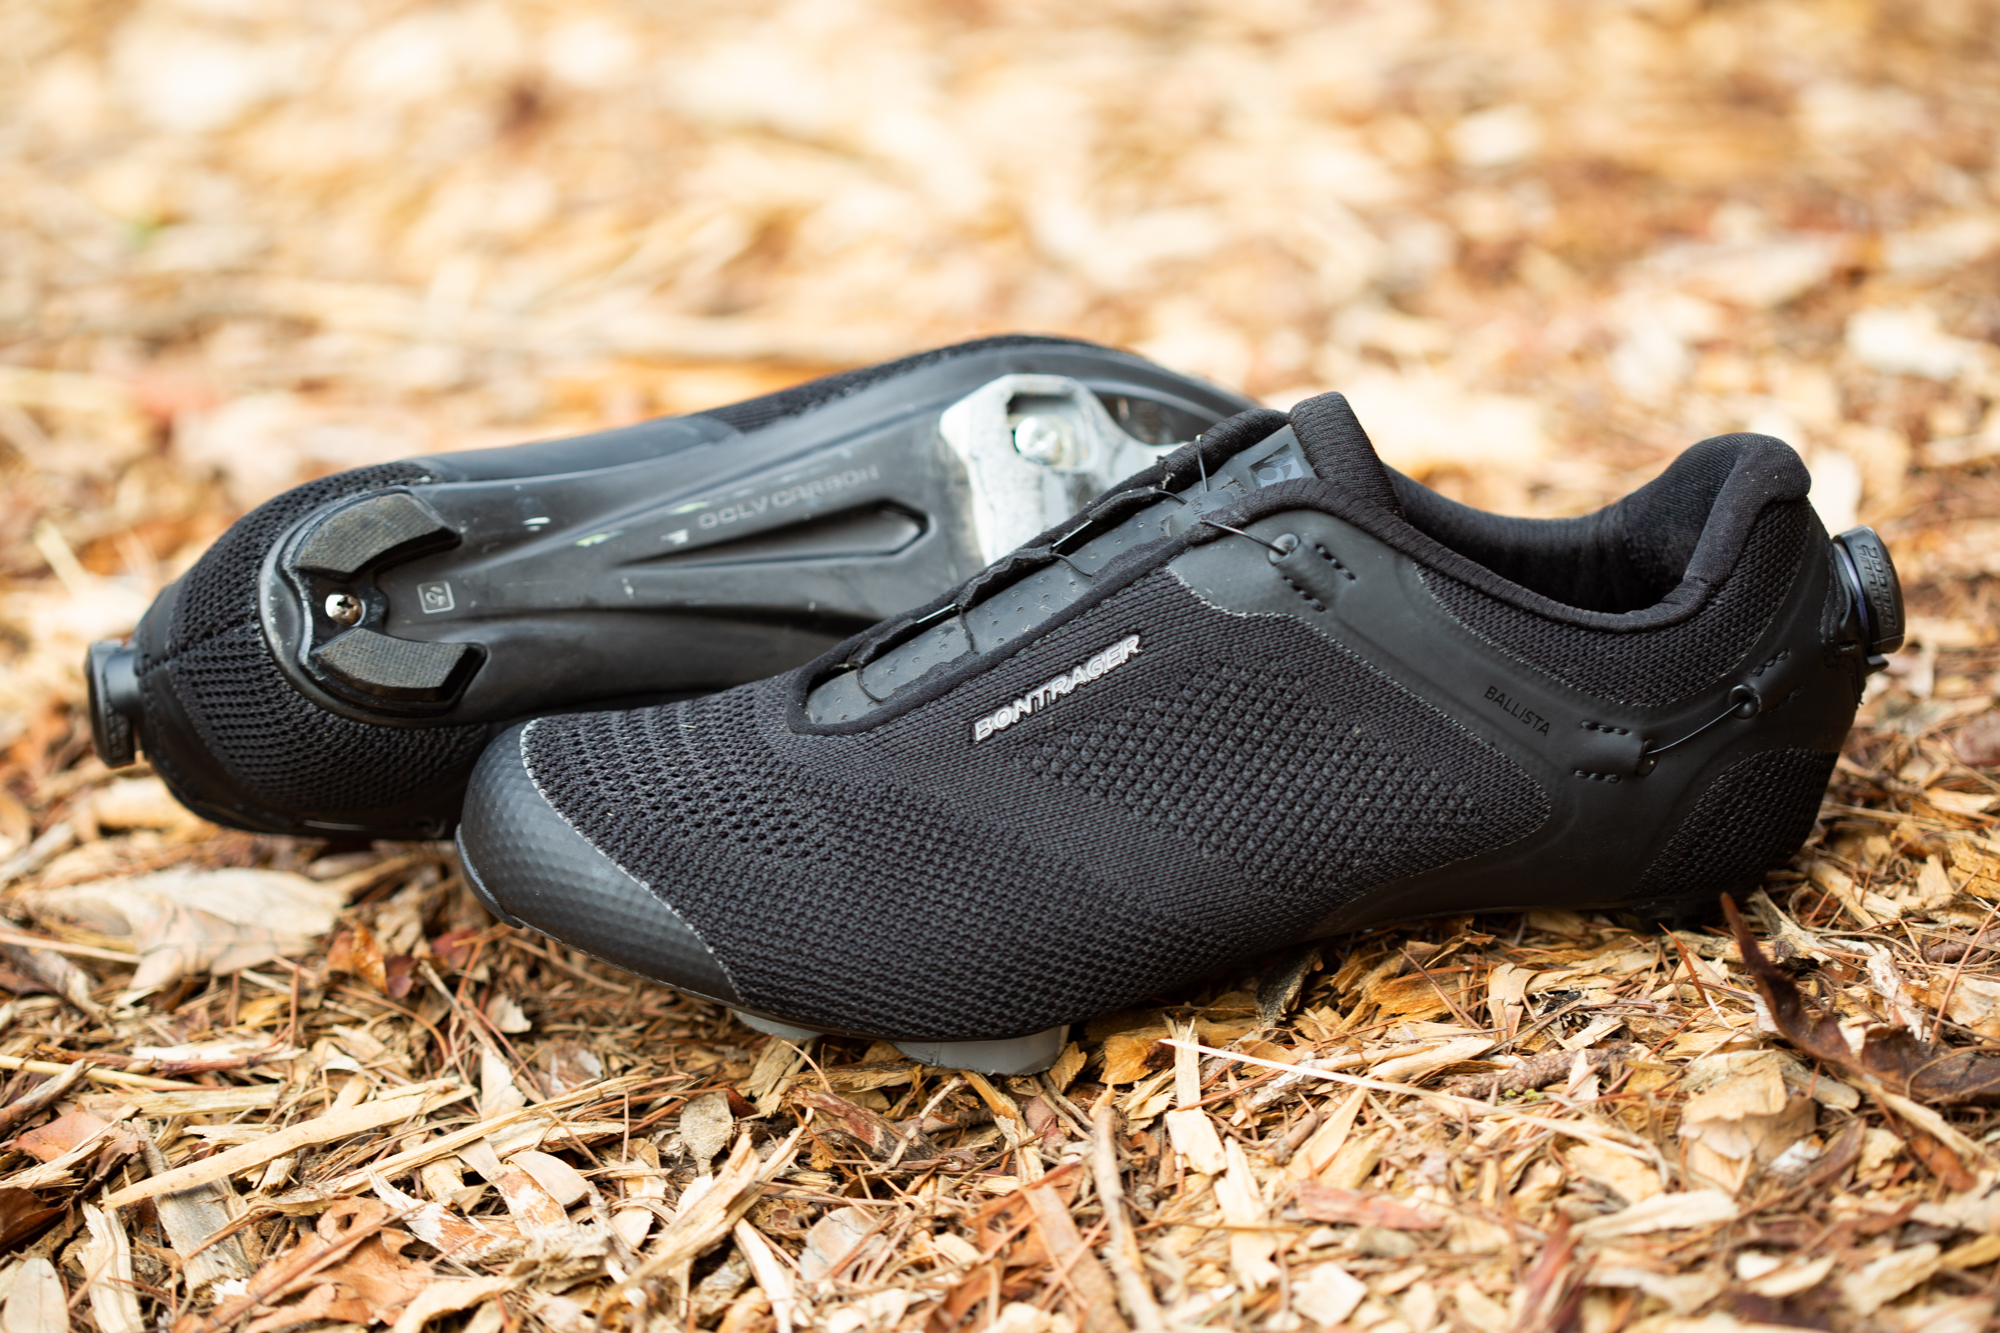 Bontrager Ballista Knit: Best Road Cycling Shoes for Most People